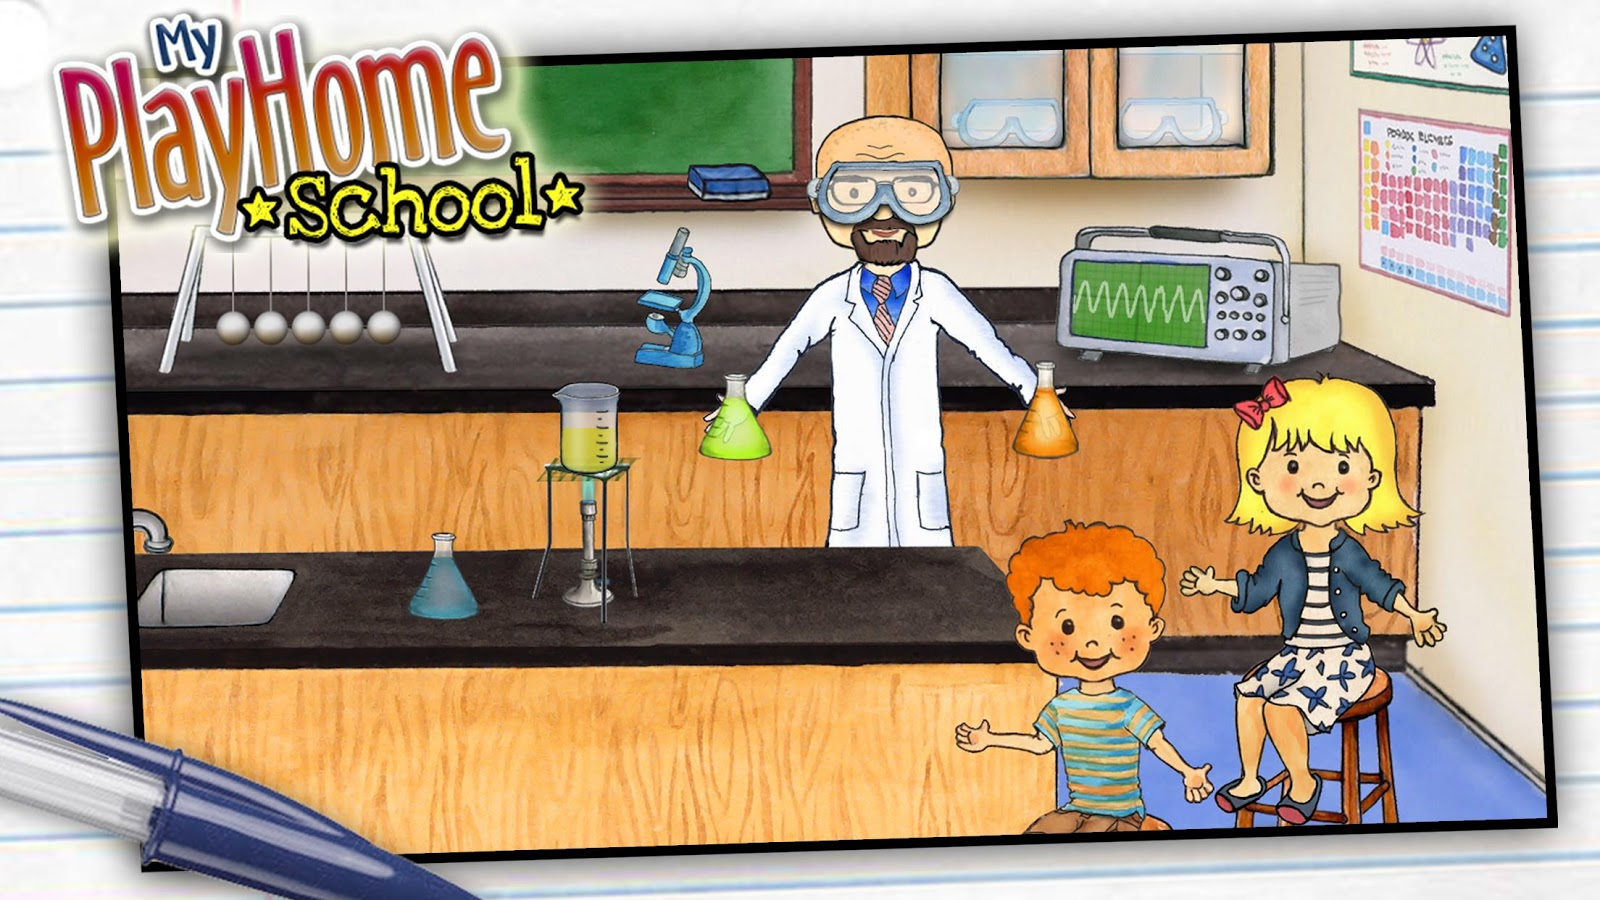 My playhome school android apps on google play for My home pictures for kids